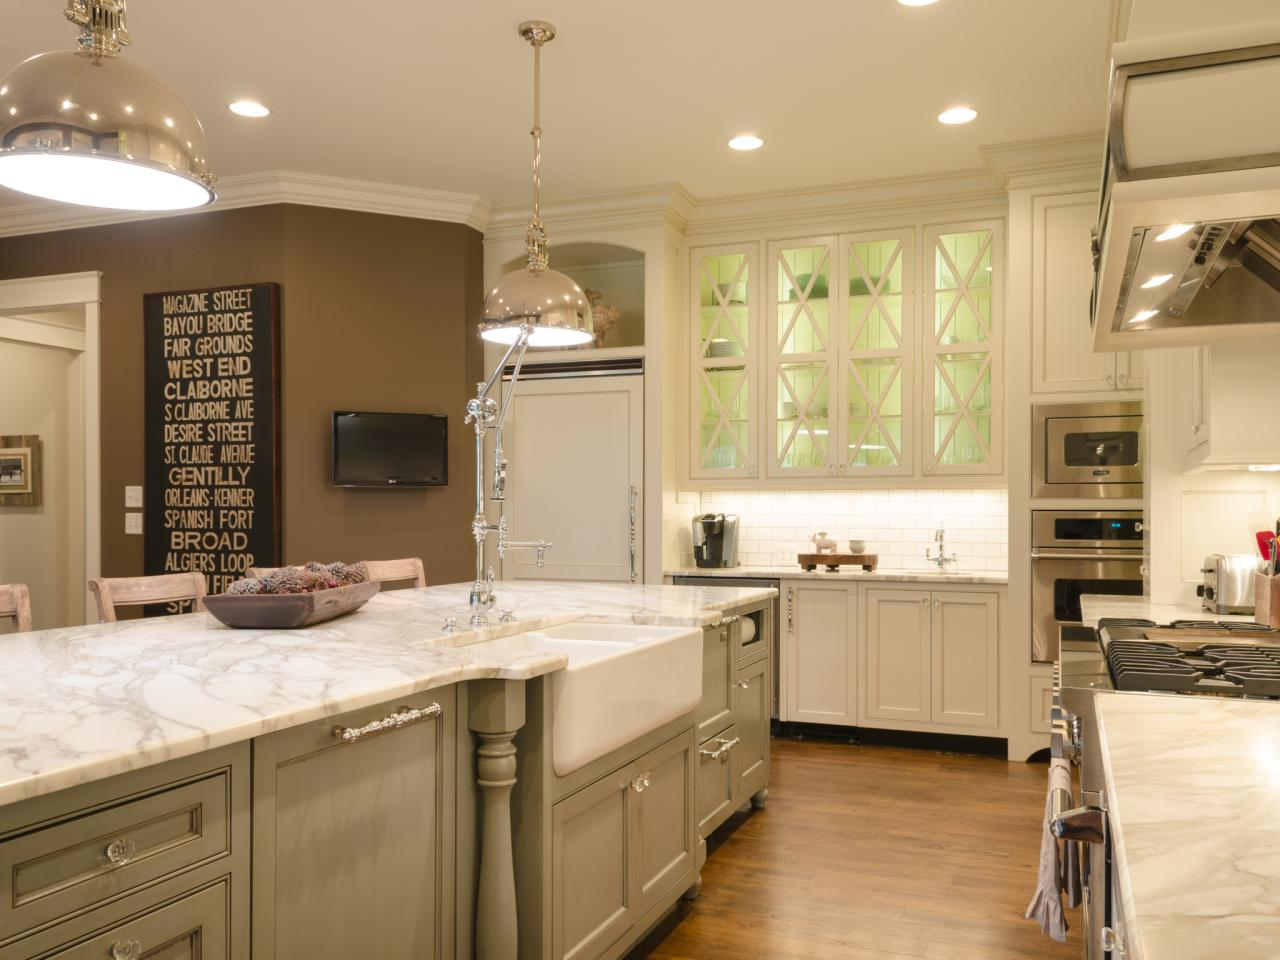 Things to Remember Before Kitchen Renovation